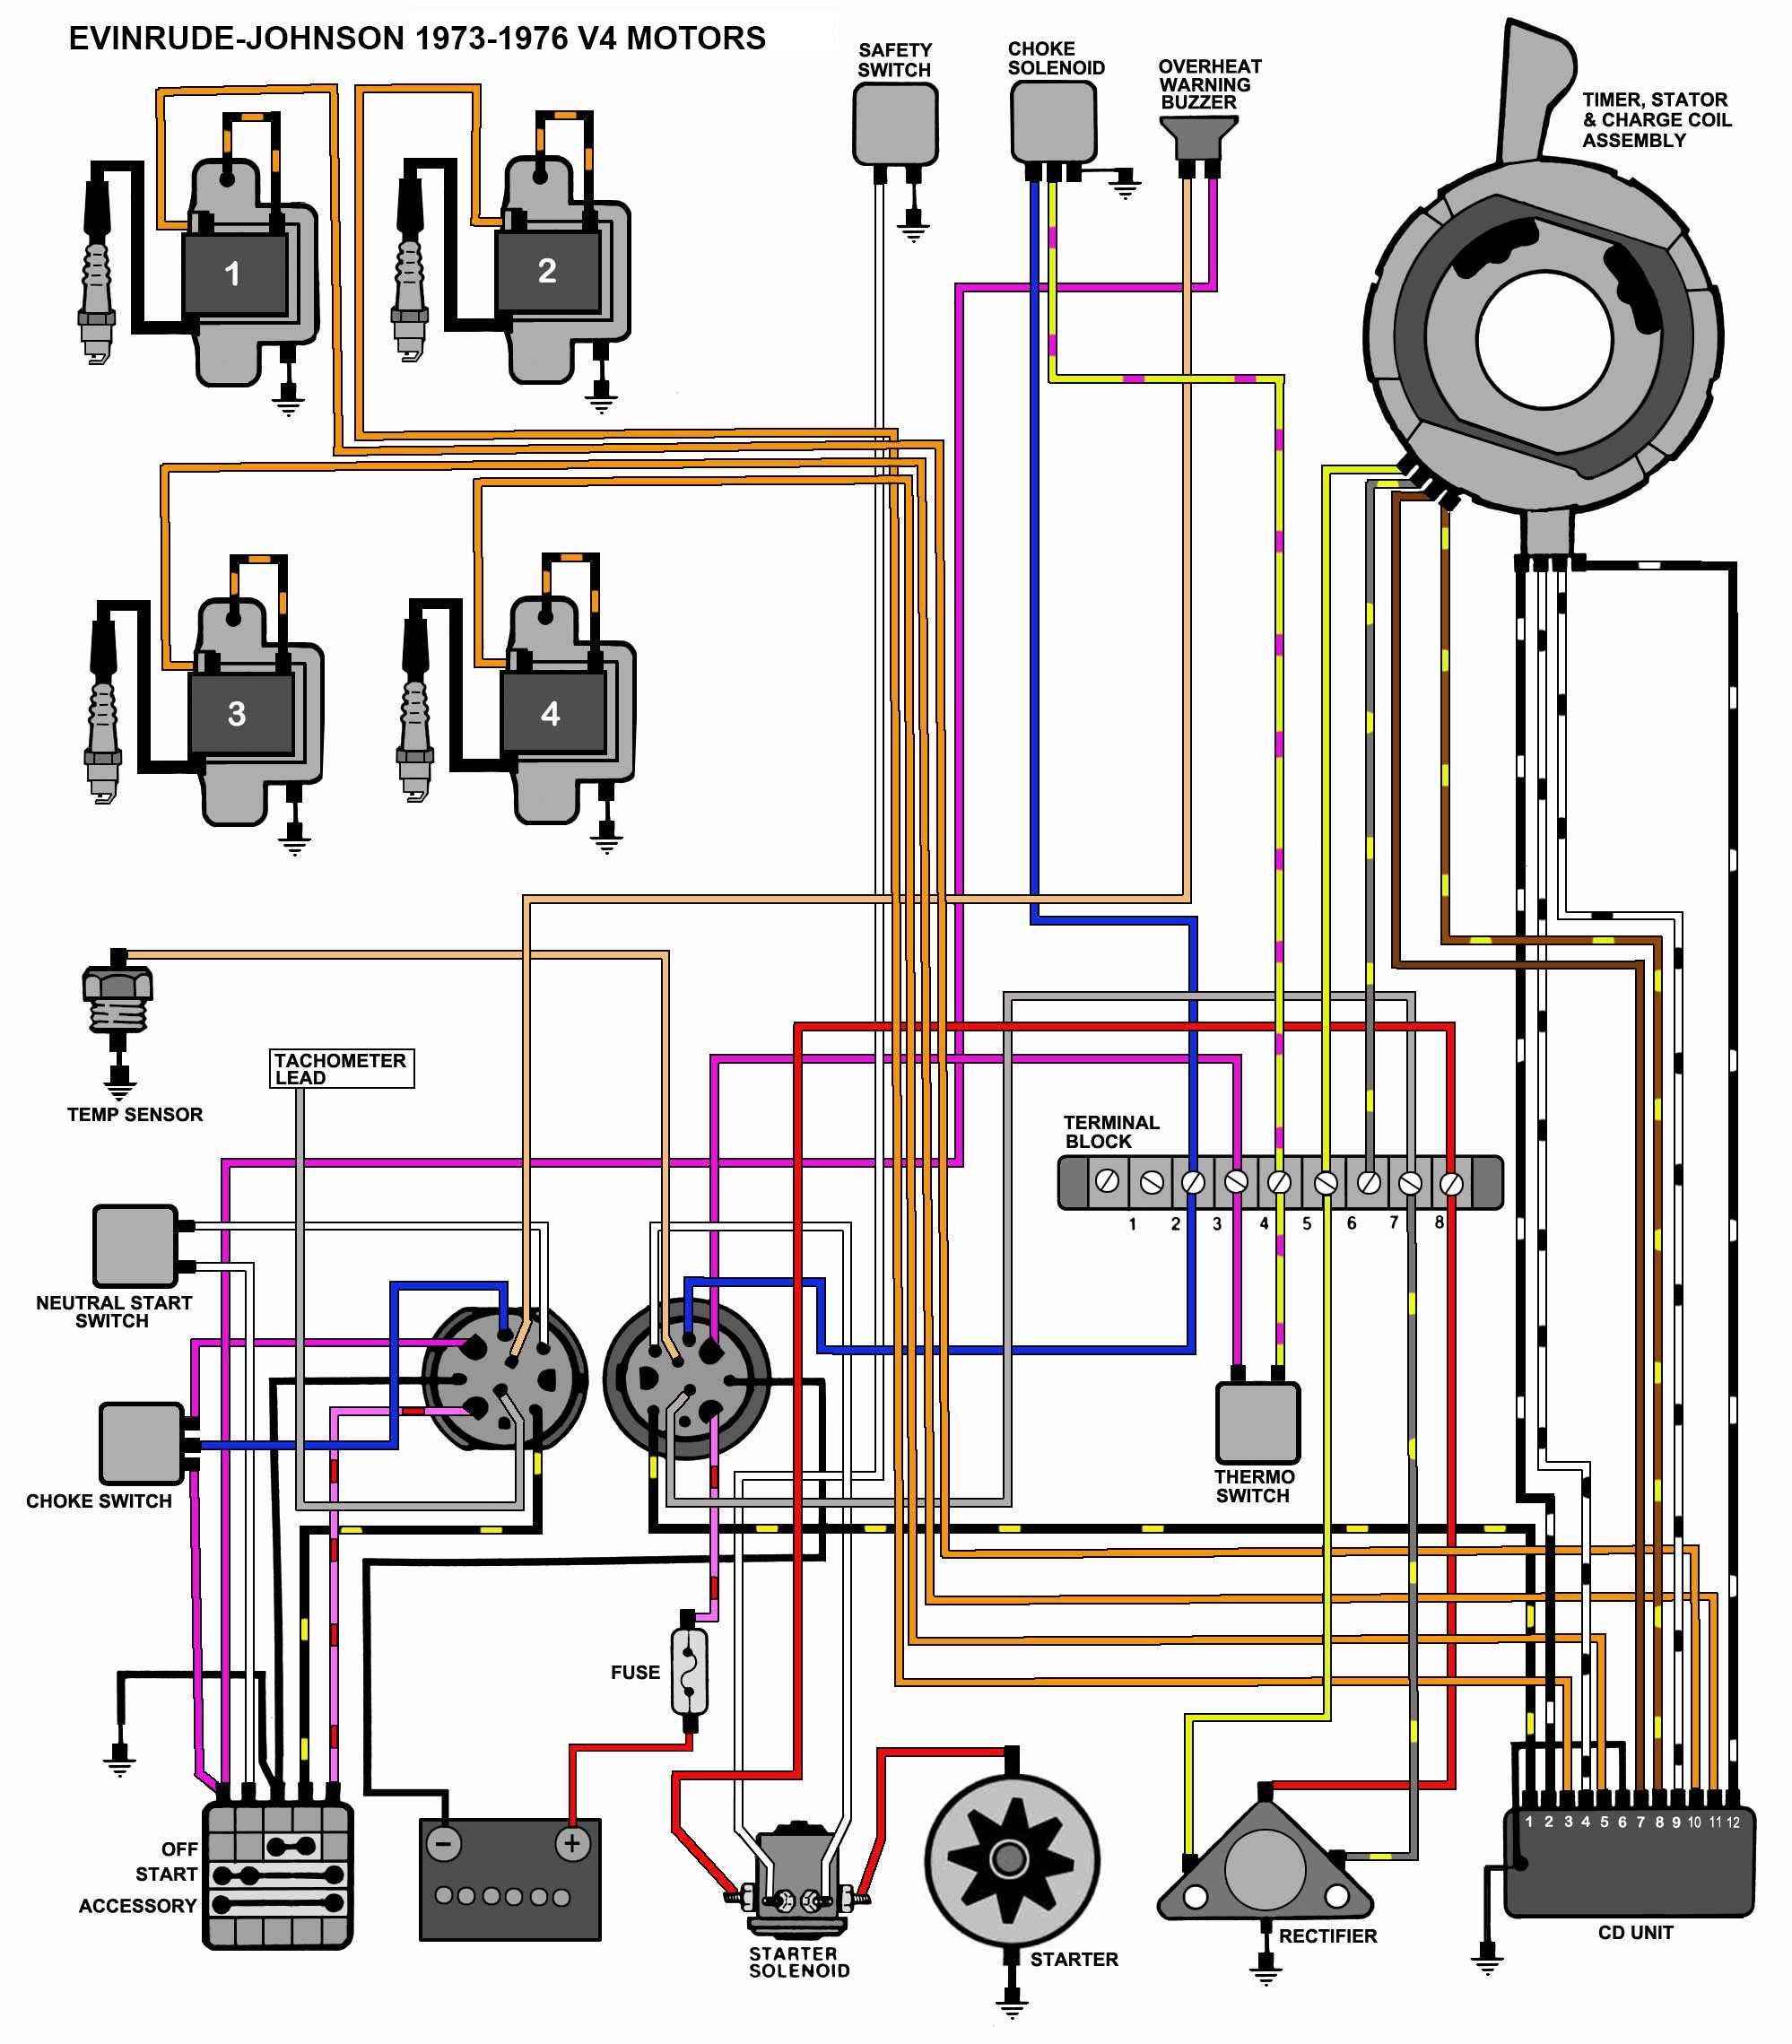 evinrude wiring harness diagram Download-evinrude outboard wiring diagram new evinrude johnson outboard rh lambdarepos org 17-l